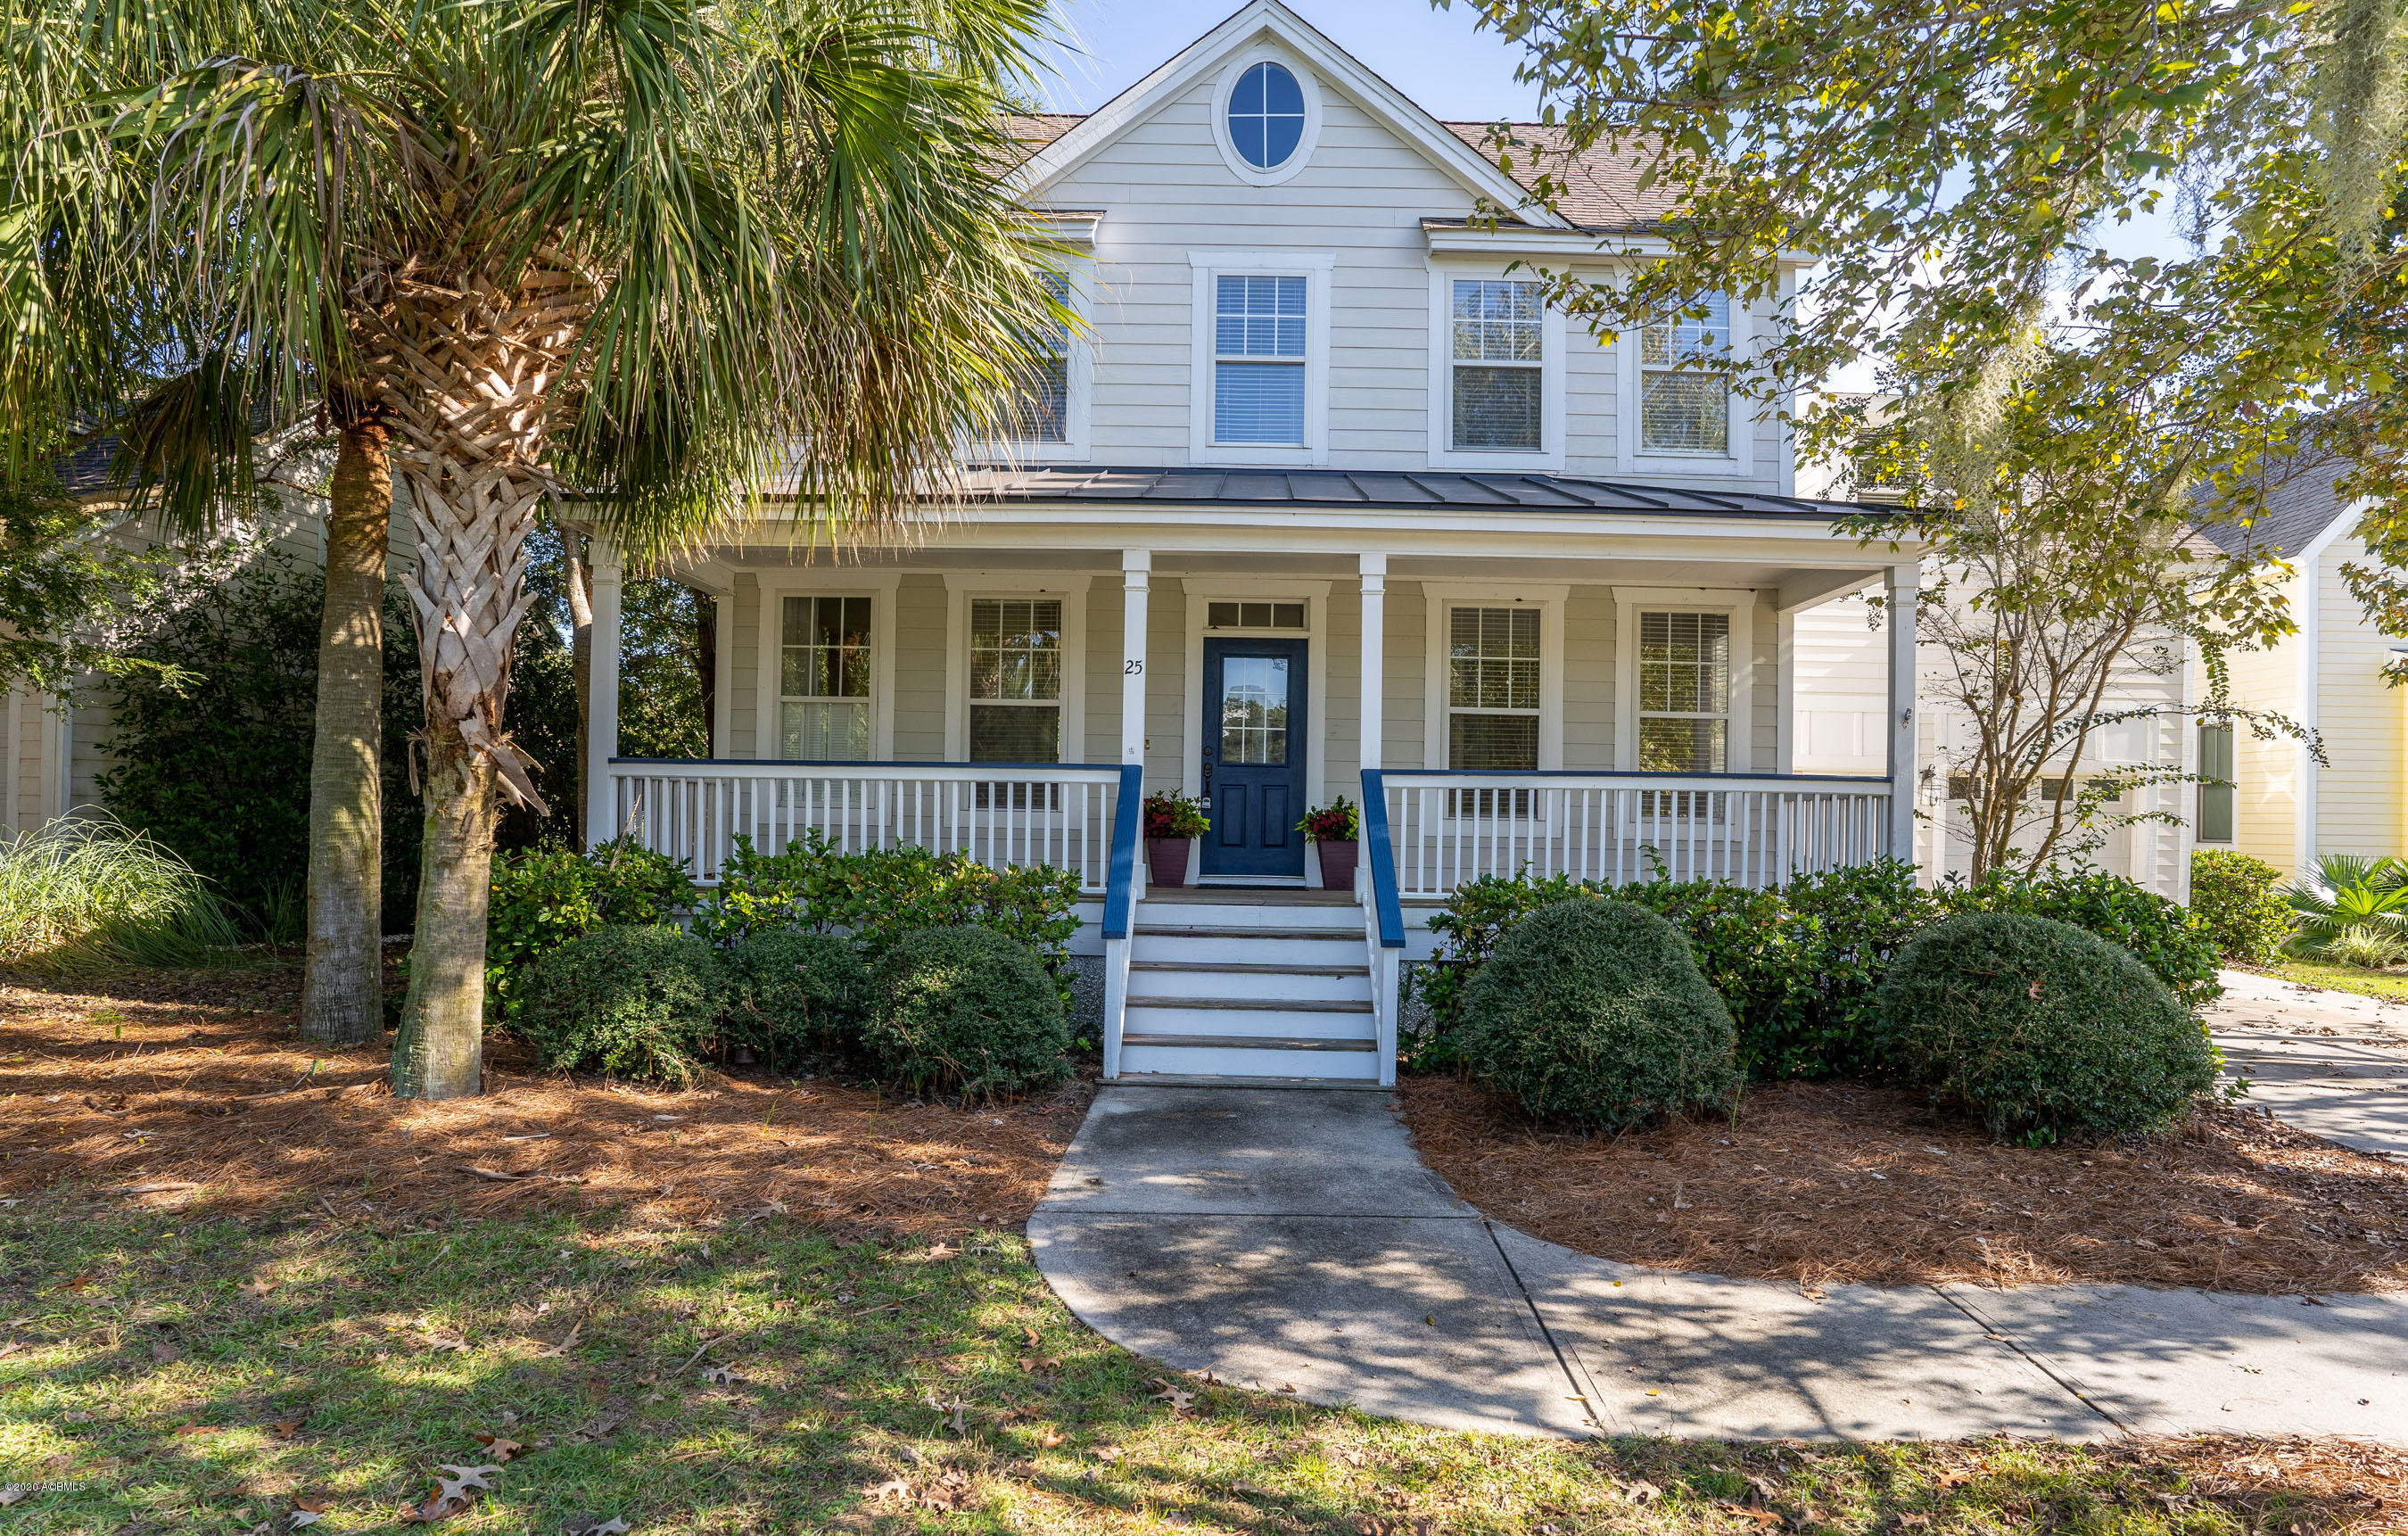 Photo of 25 National Boulevard, Beaufort, SC 29907